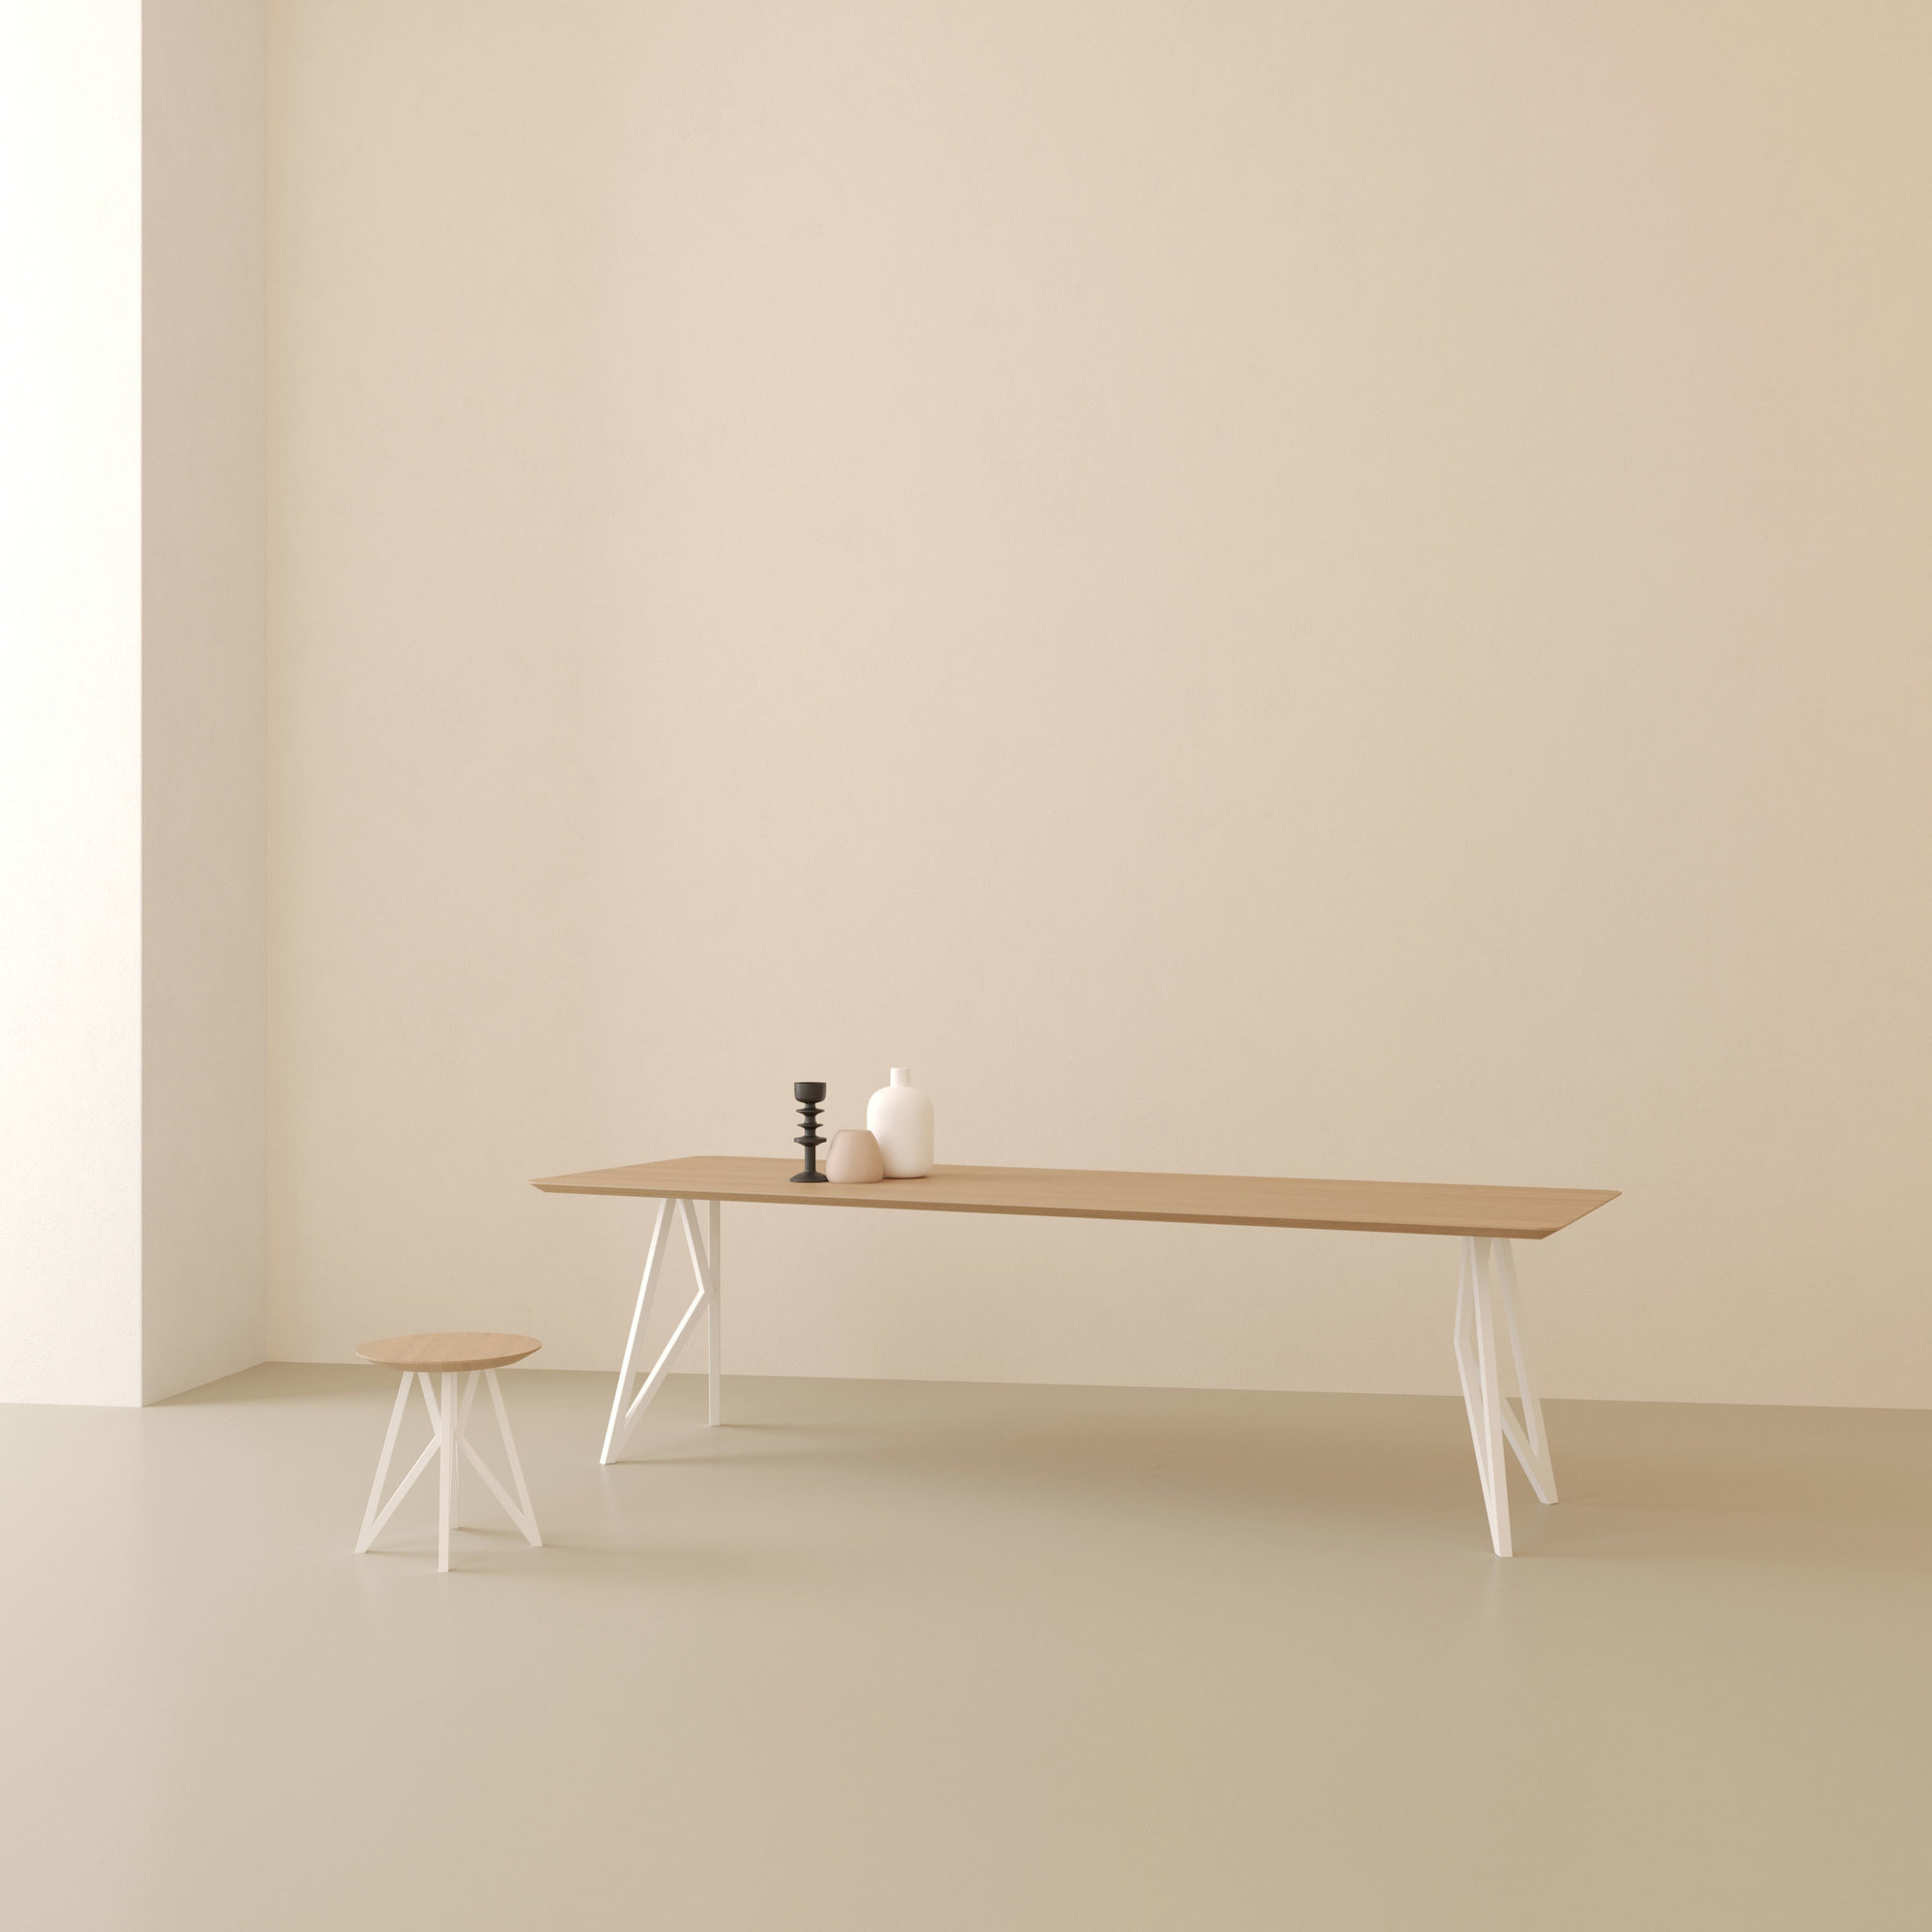 Design salontafel | Butterfly Quadpod Coffee Table White | Oak hardwax oil natural light 3041 | Studio HENK | Setting